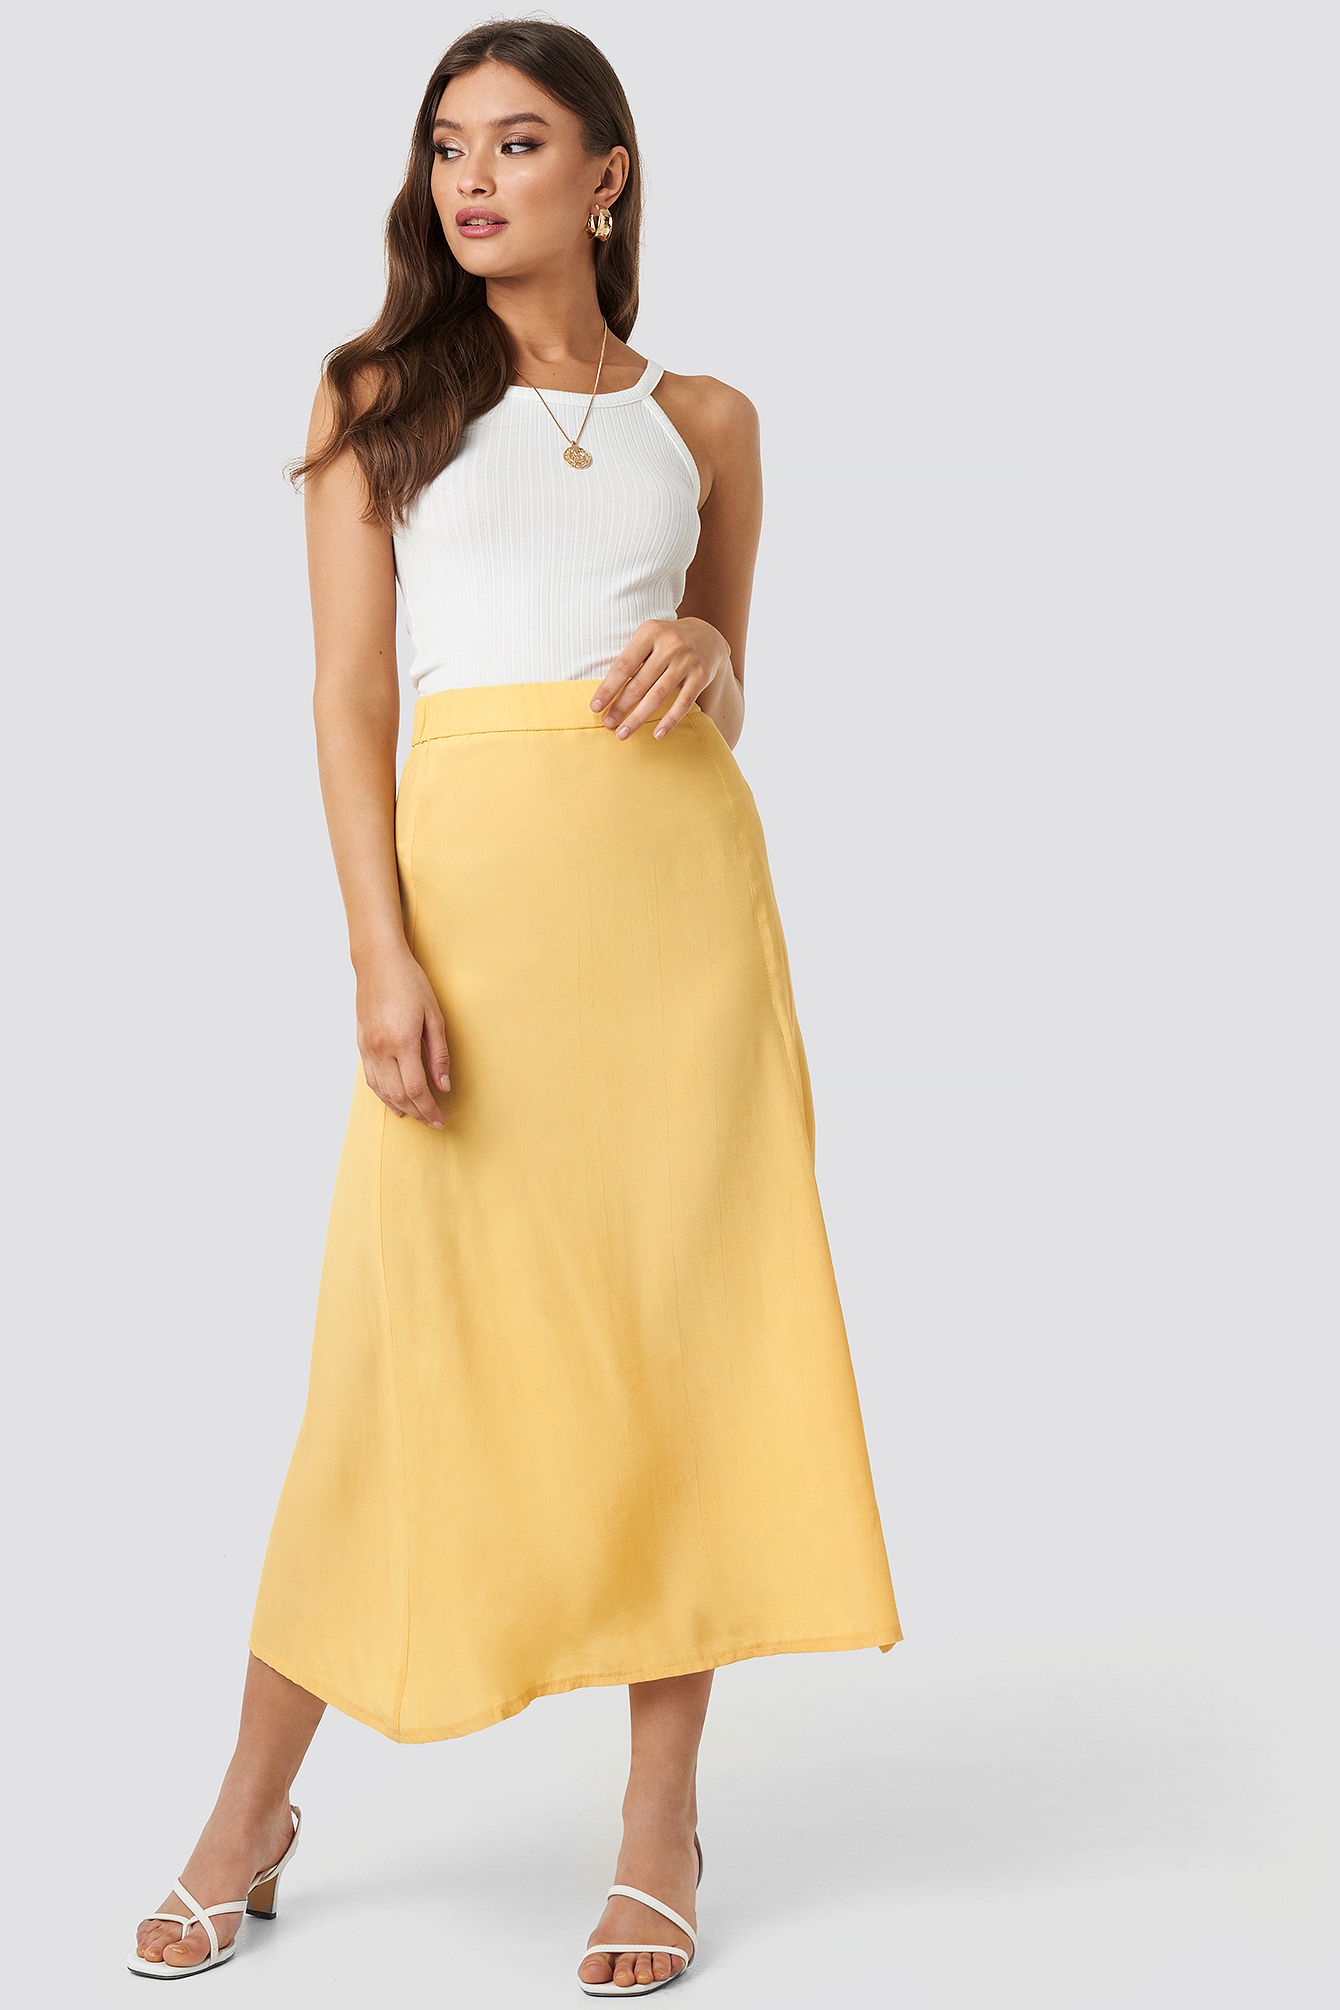 Yellow One Slit Skirt